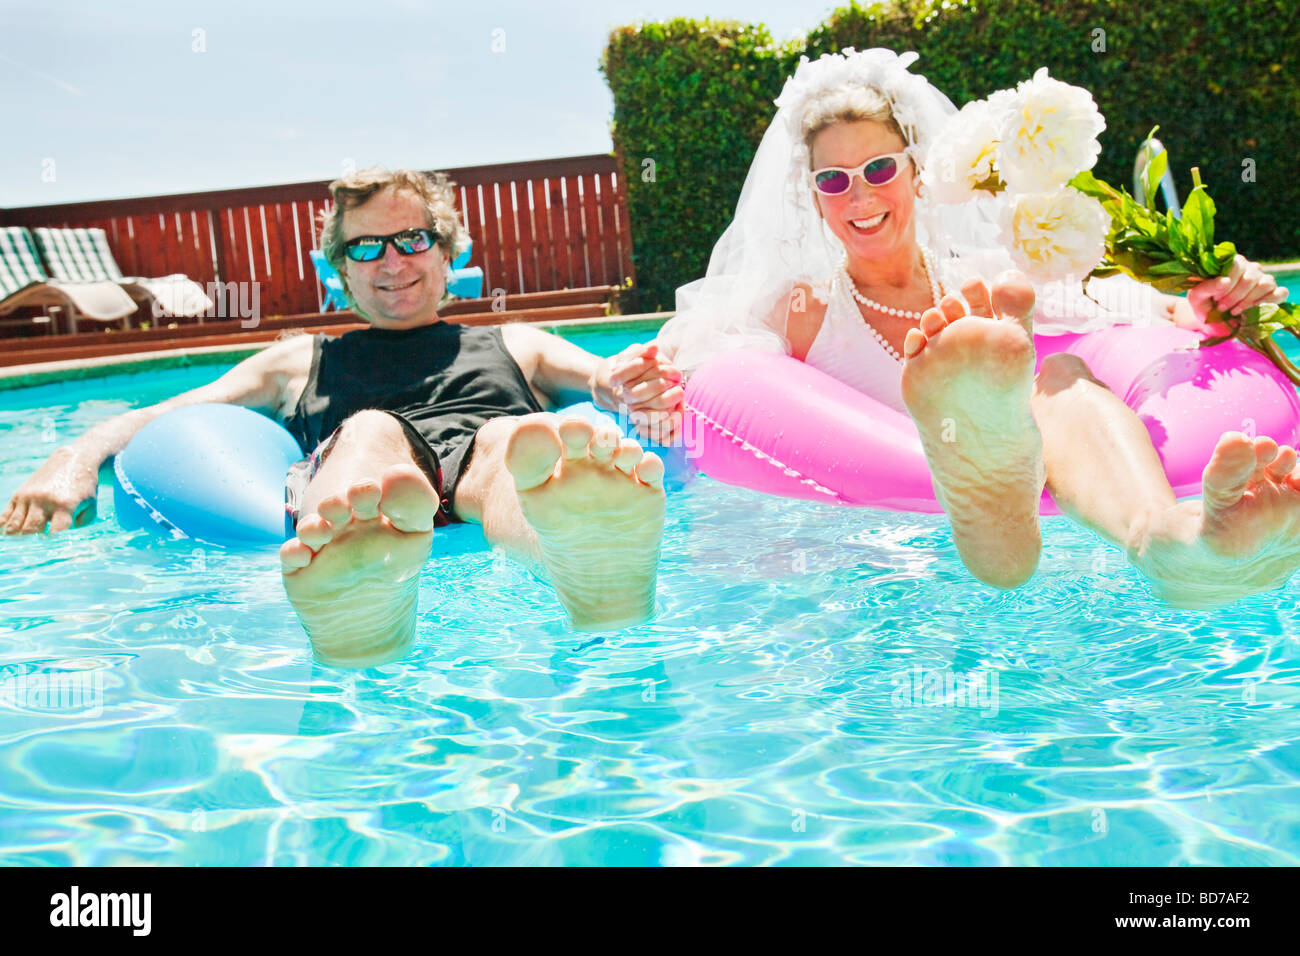 Bride and groom in swimming pool Stock Photo: 25362822 - Alamy